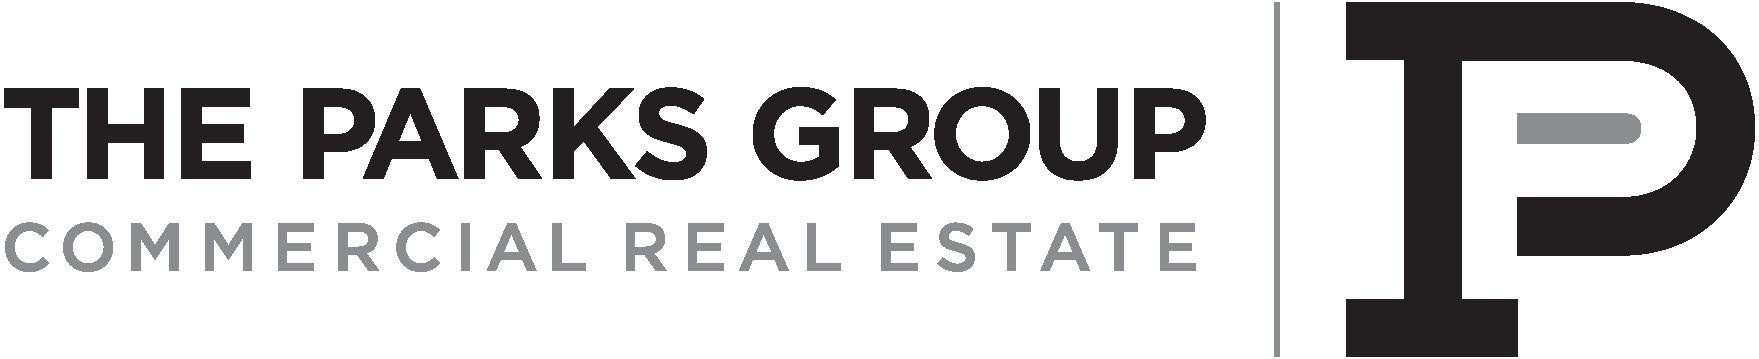 The Parks Group